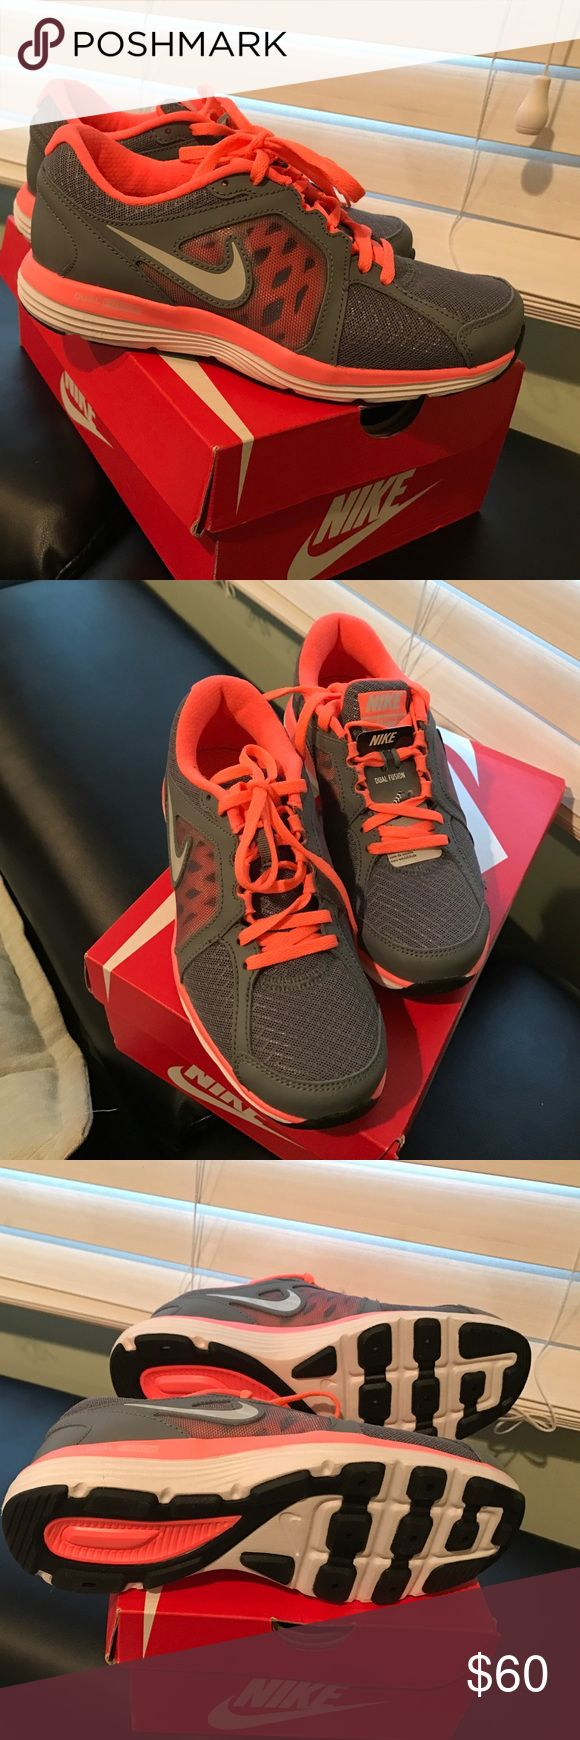 Nike dual fusion grey & neon coral color sneakers Nike dual fusion grey & neon coral color sneakers. Brand new ... don't have original box. Will ship without box unless requested. Run big, I normally buy 6 1/2 Nike Shoes Sneakers